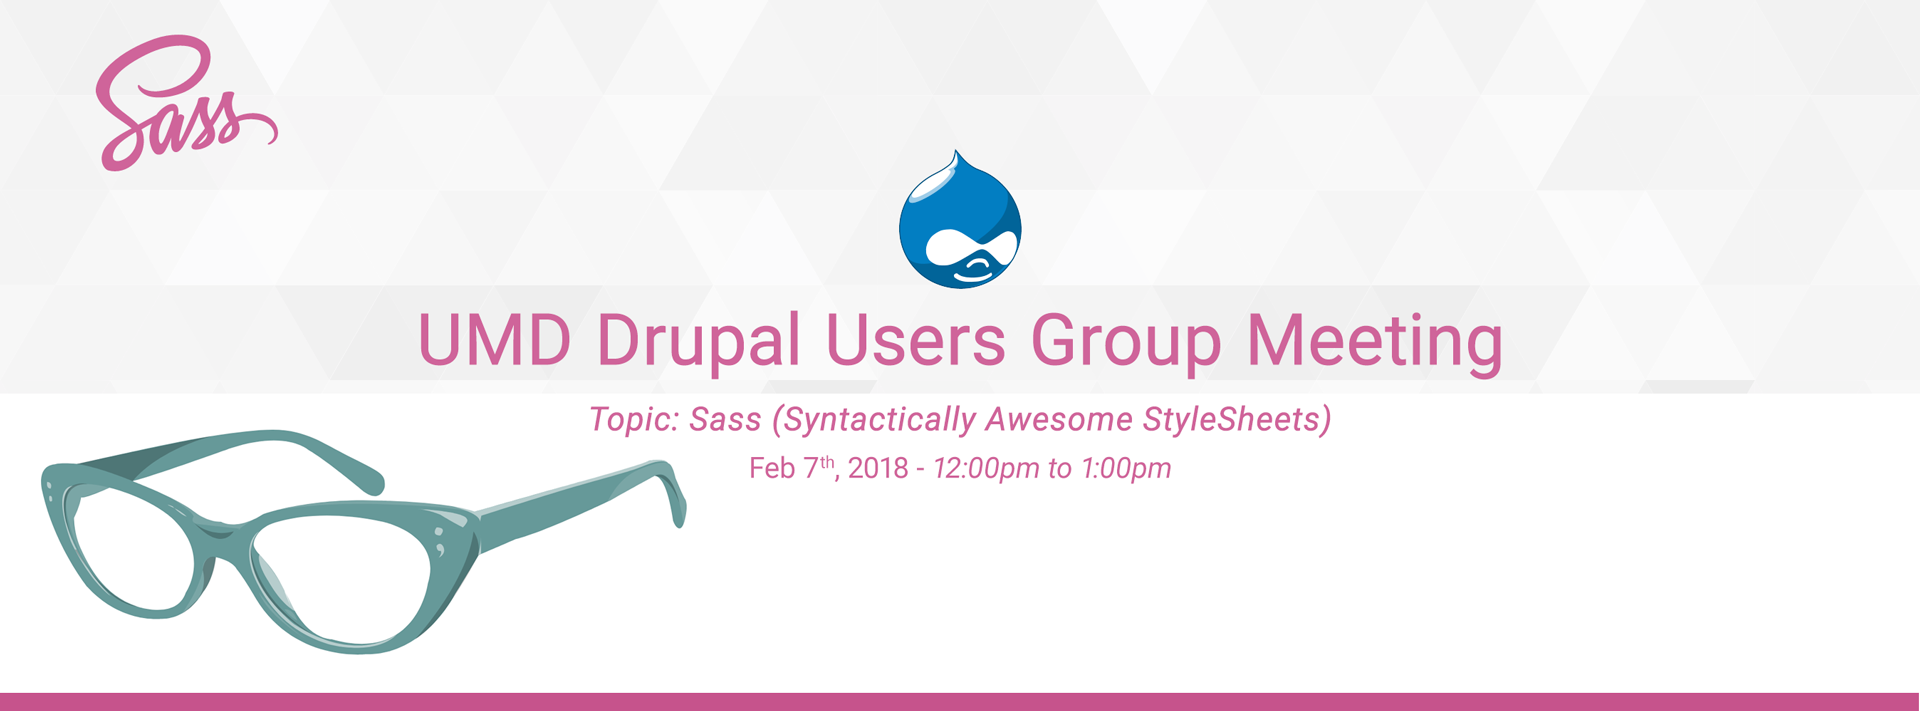 Drupal Users Meeting - SASS